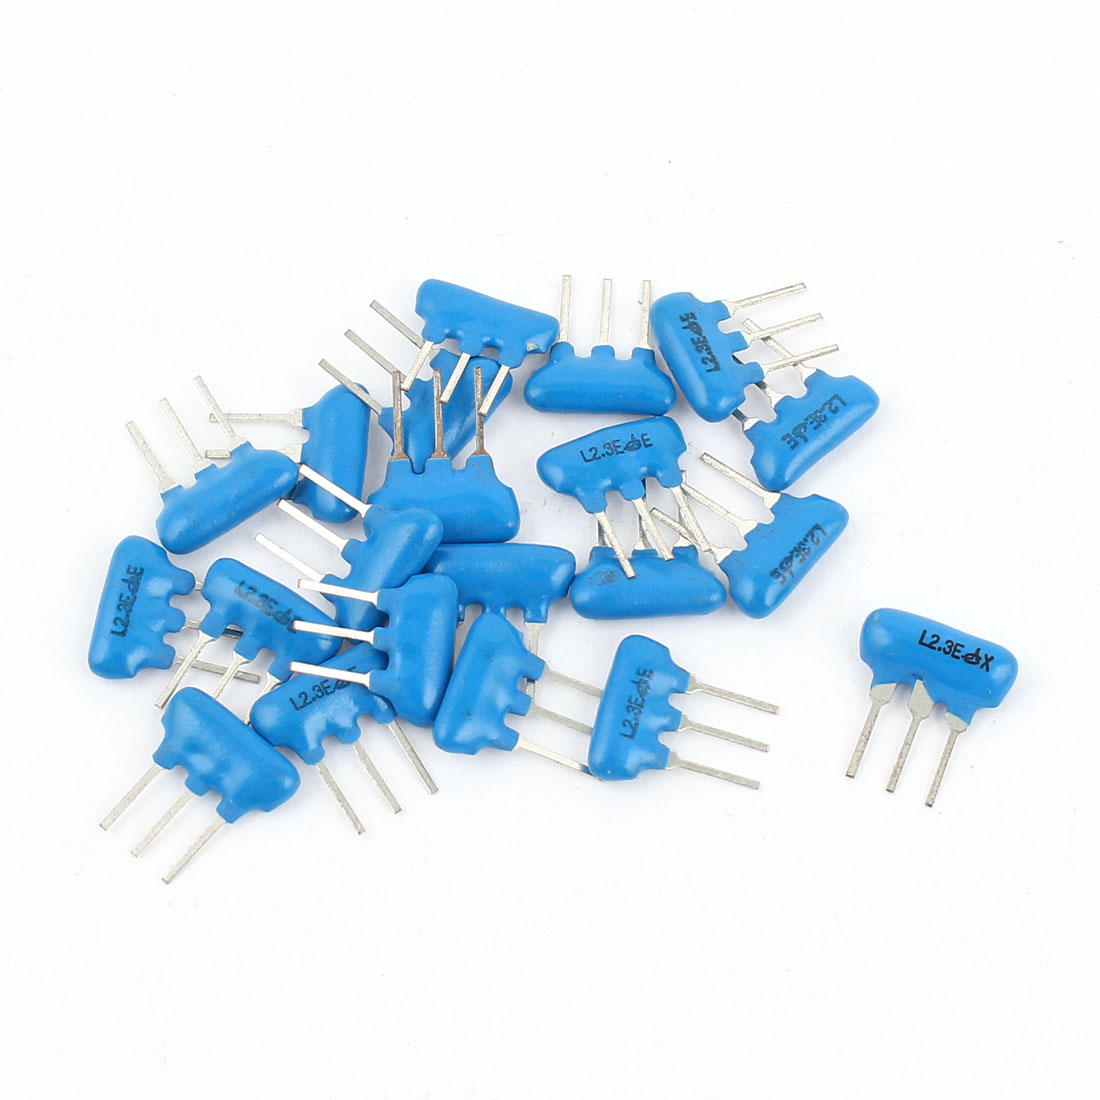 20 Pcs Radial Lead Ceramic Filter Crystal Resonators 2.3MHz LTS2.3MEB Blue